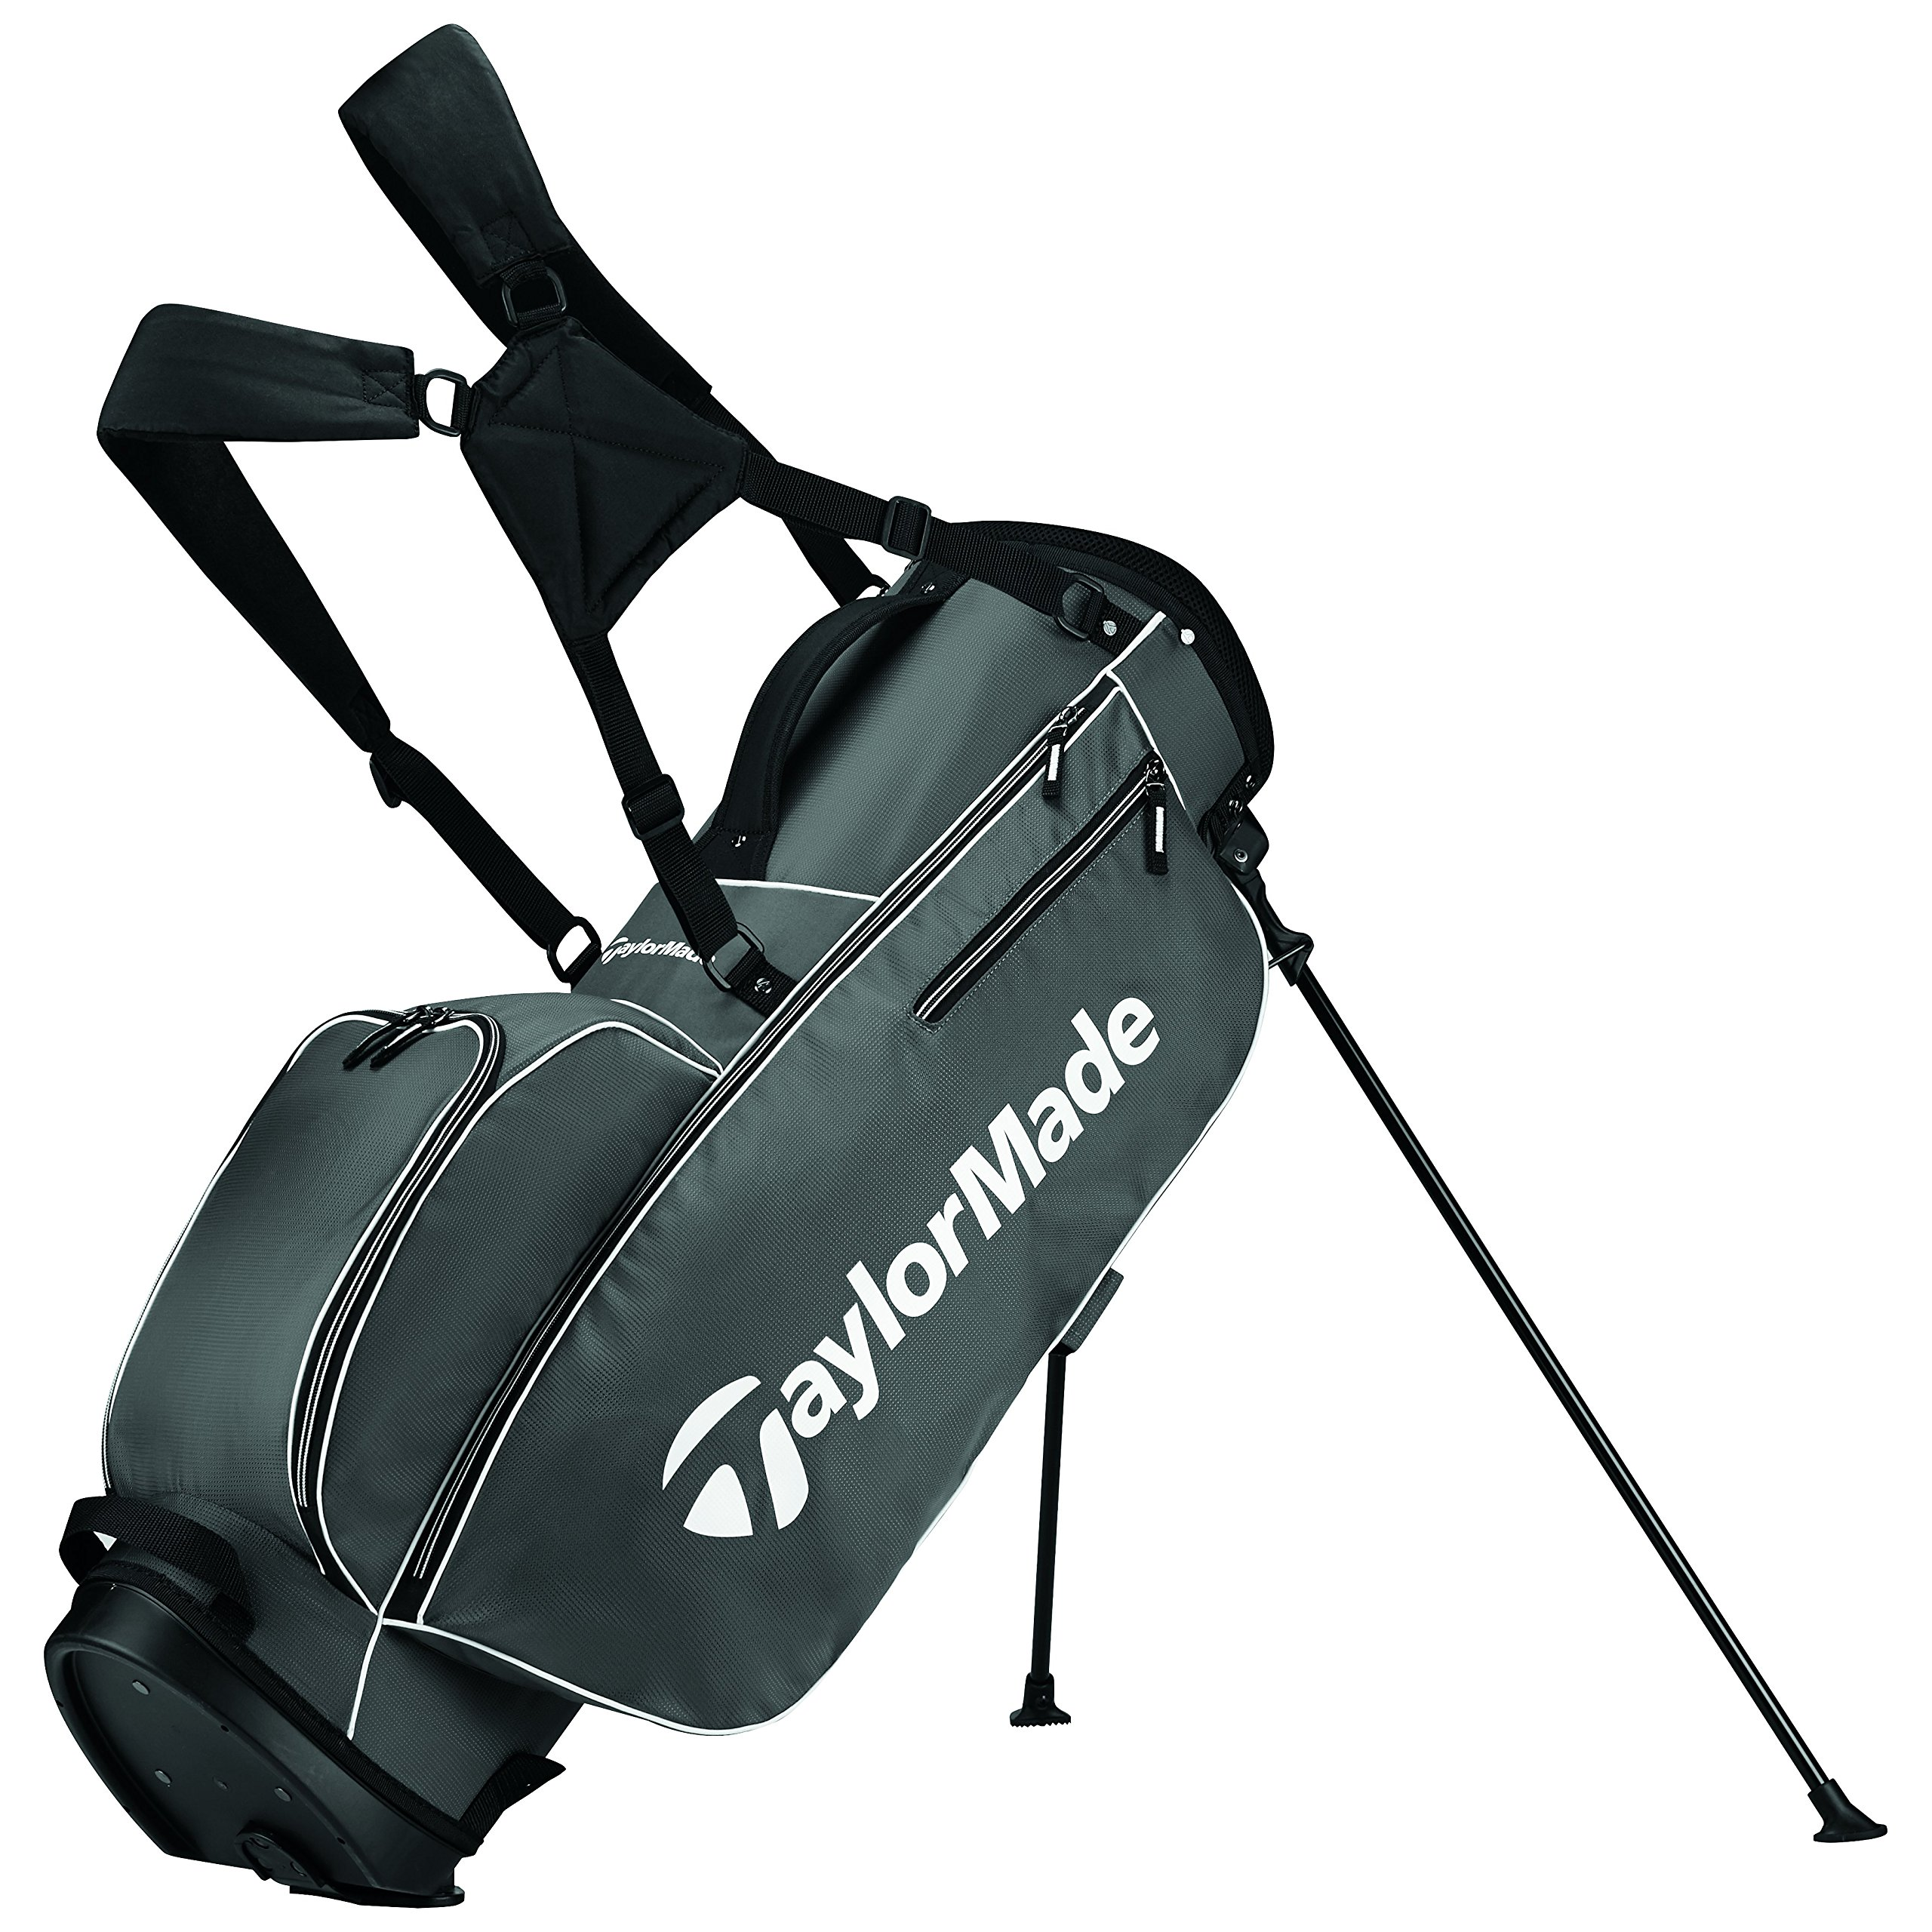 TaylorMade 2017 TM 5.0 Stand Golf Bag, Grey/White by TaylorMade